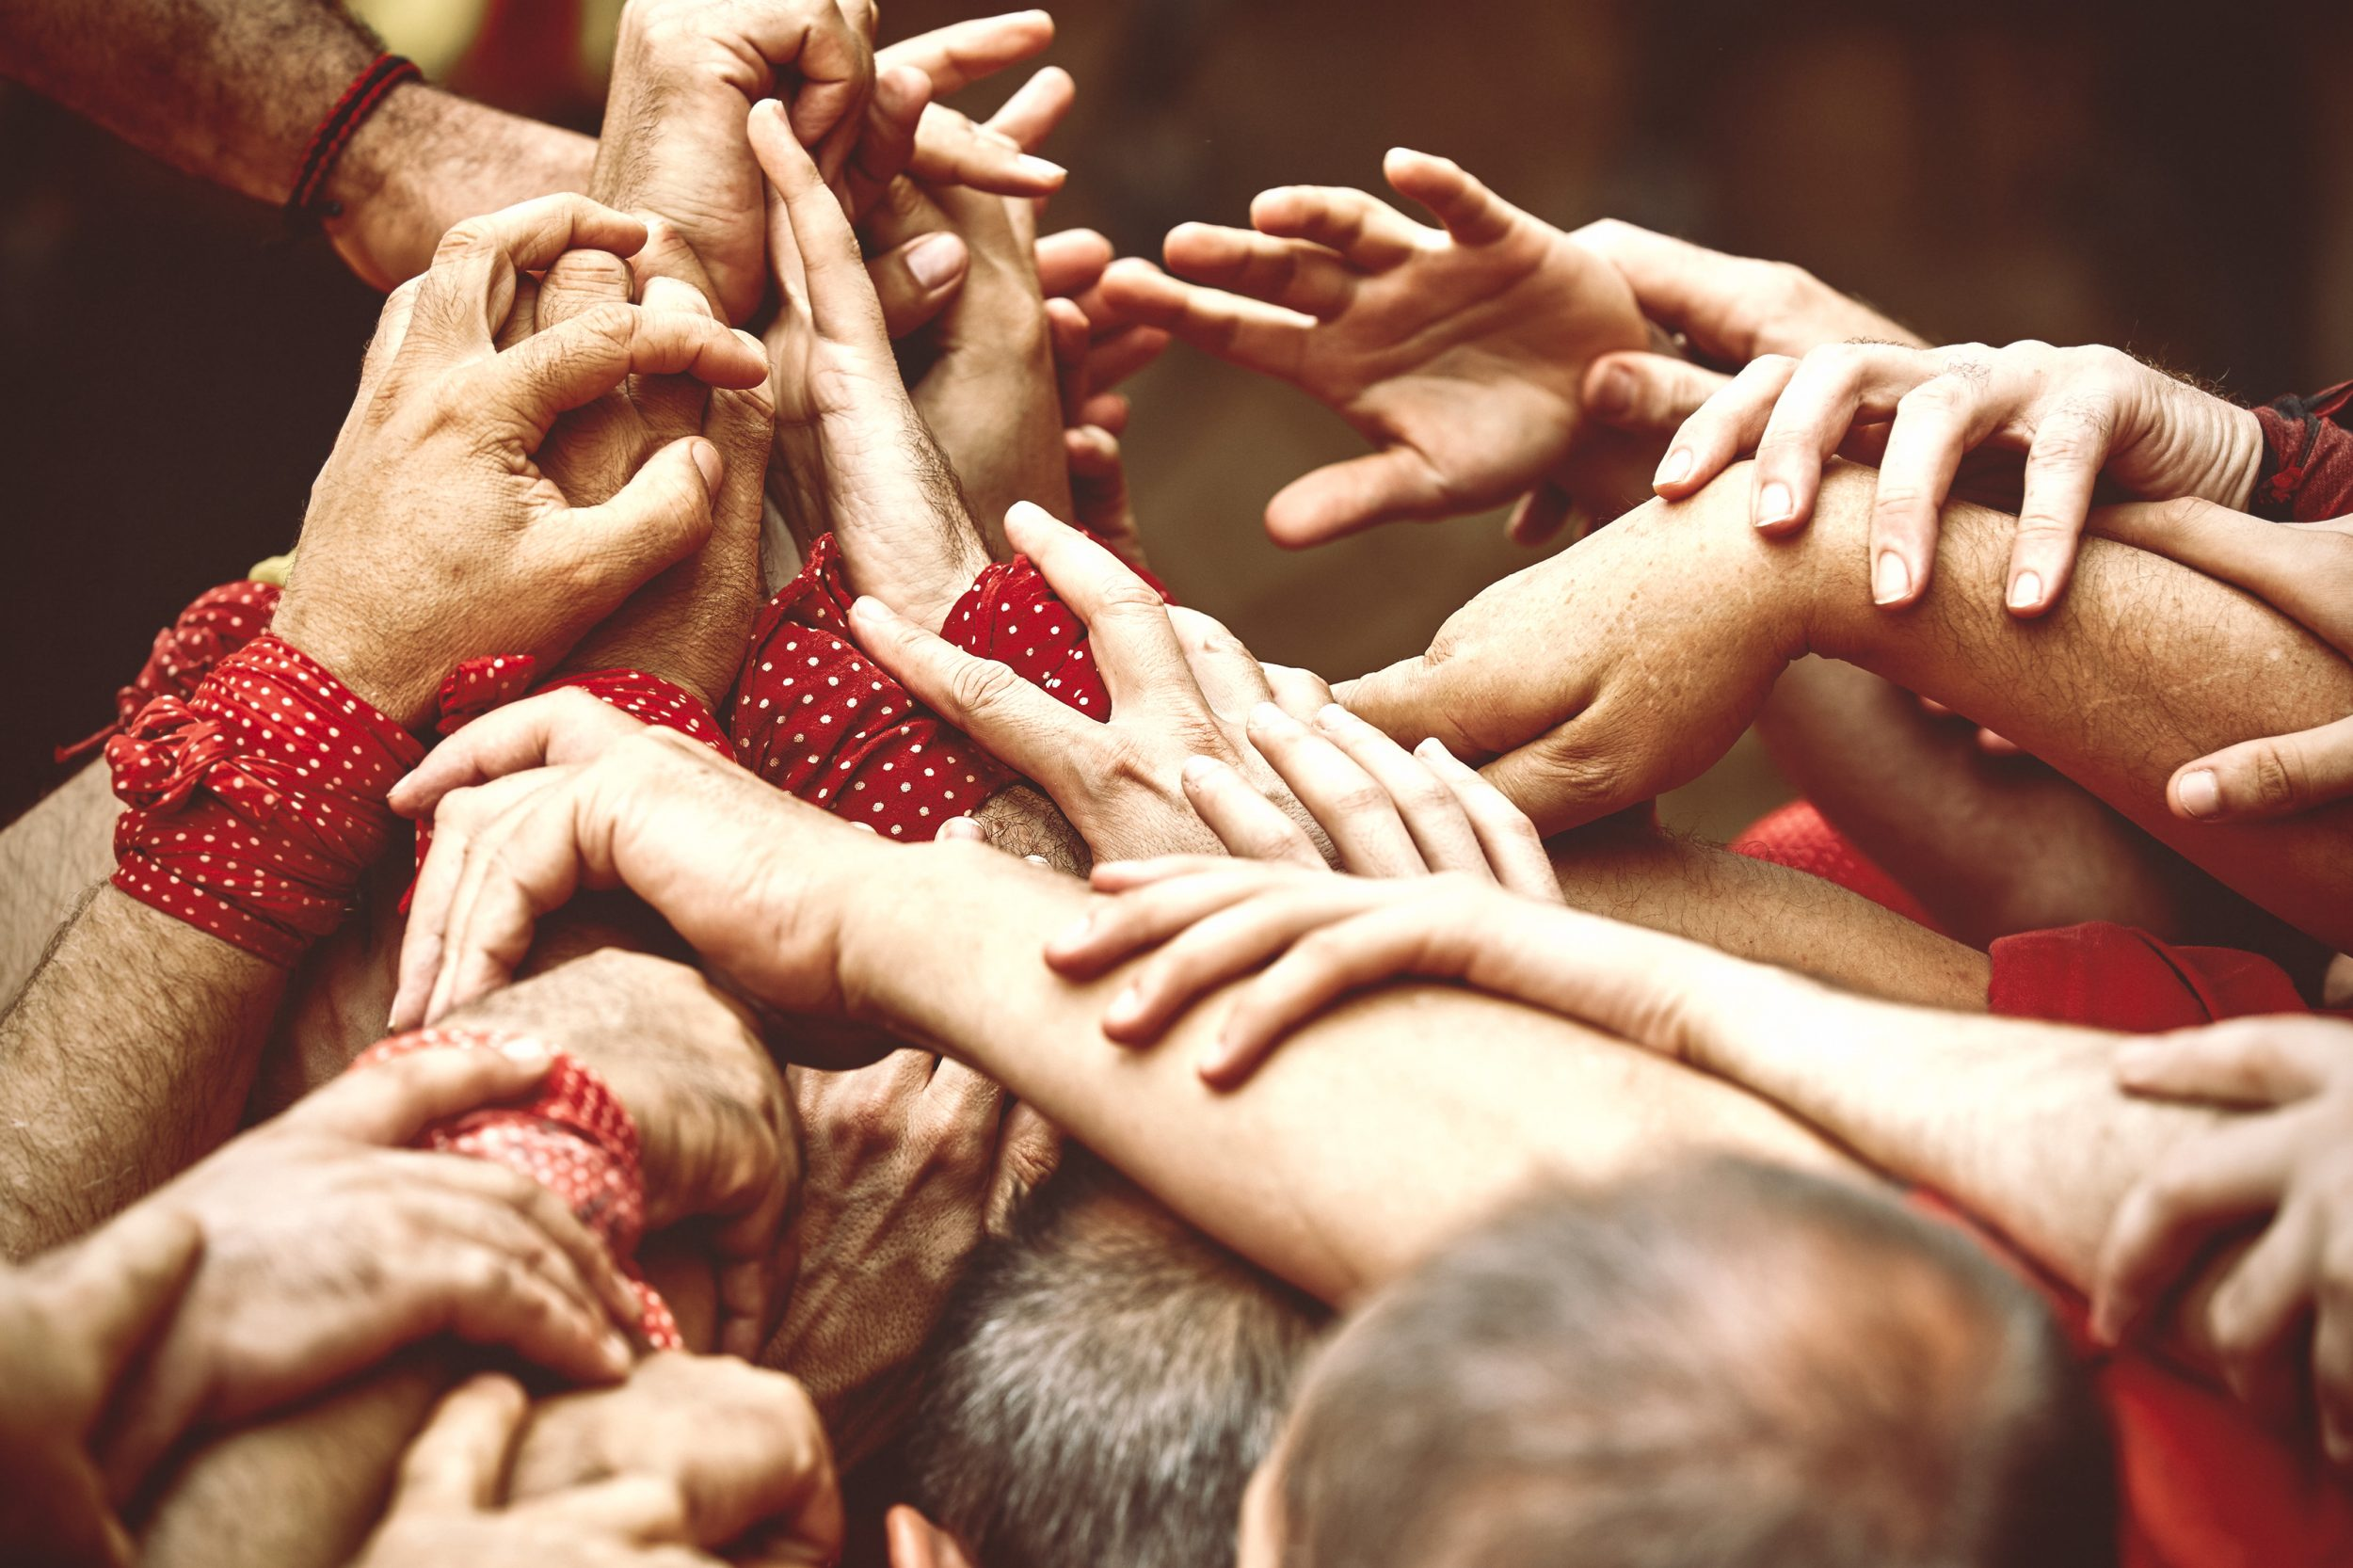 Castellers working as a team to build a human tower